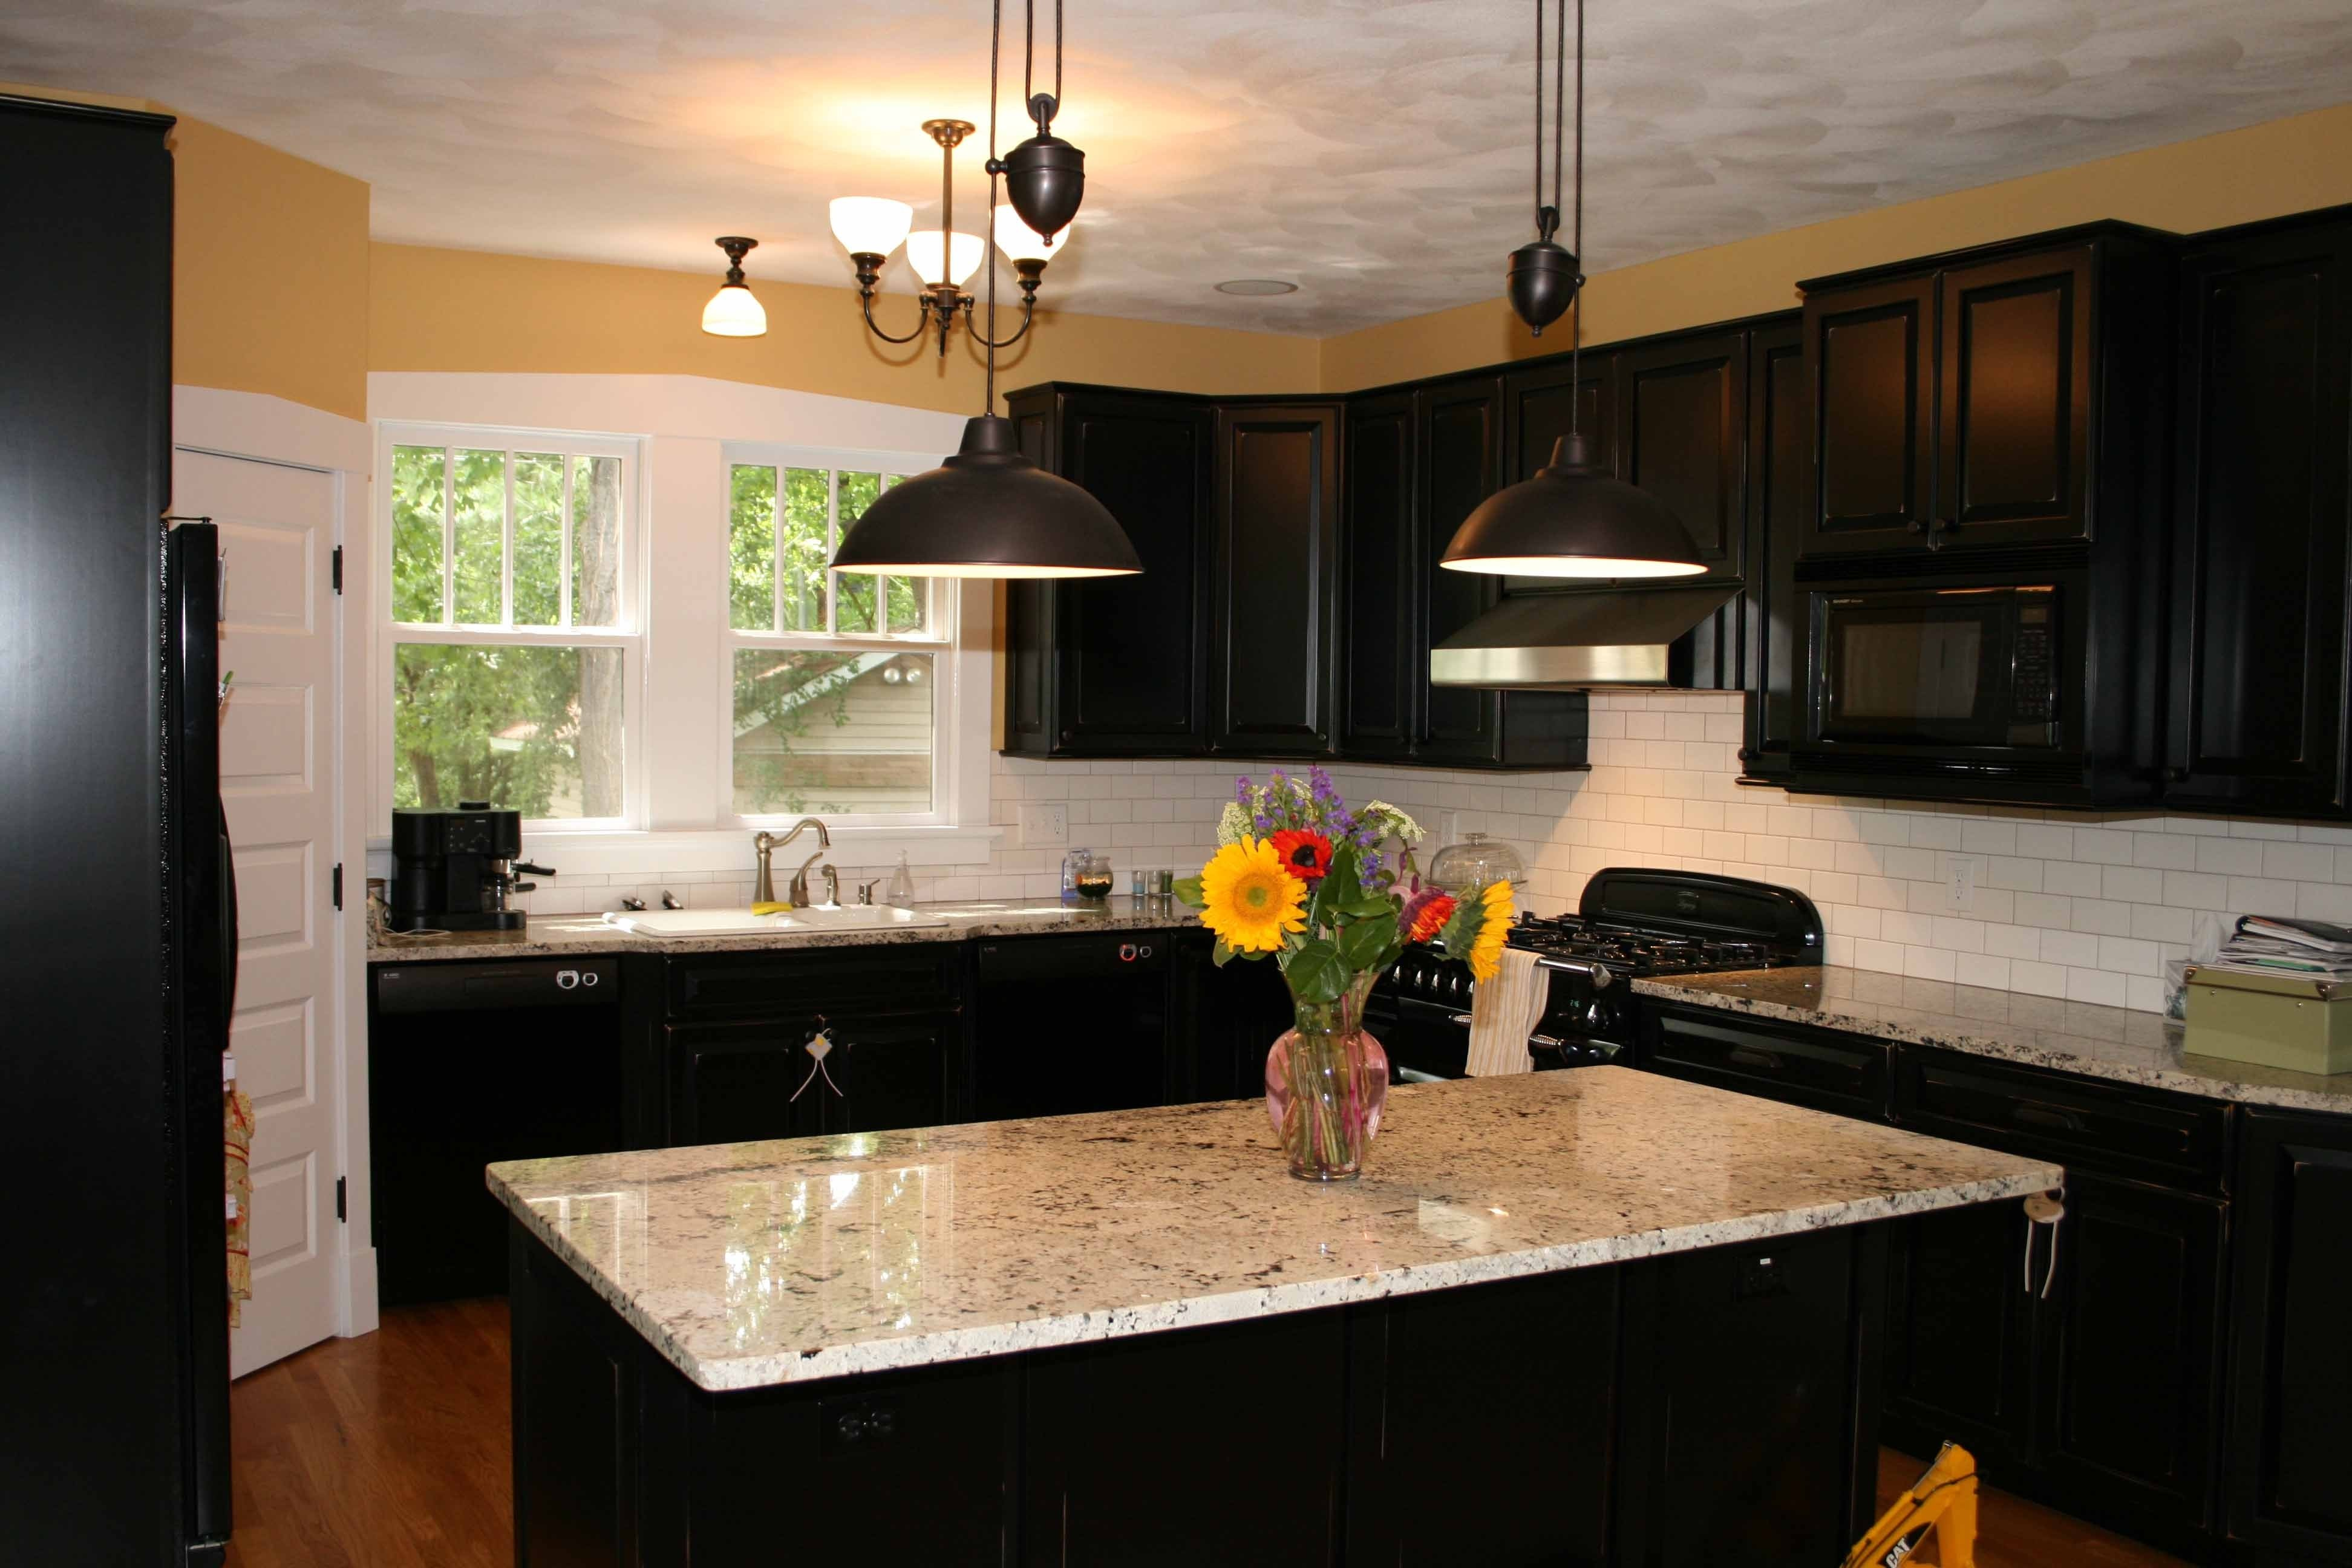 10 Pretty Kitchen Paint Ideas With Dark Cabinets best kitchen paint colors idea with round lamps and brown floor 1 2020